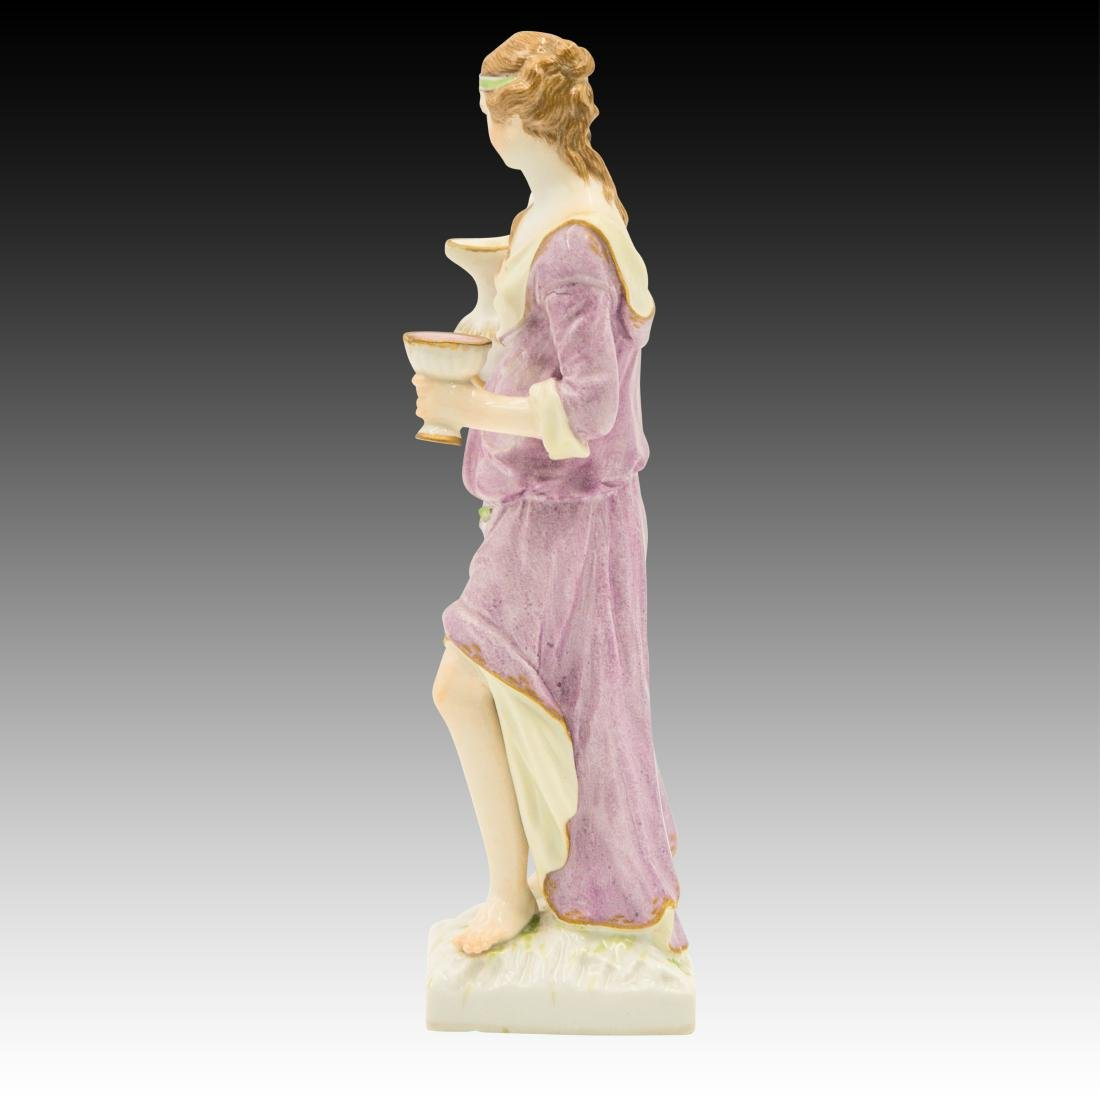 Semi Nude Woman with Wine Pitcher Figurine - 4